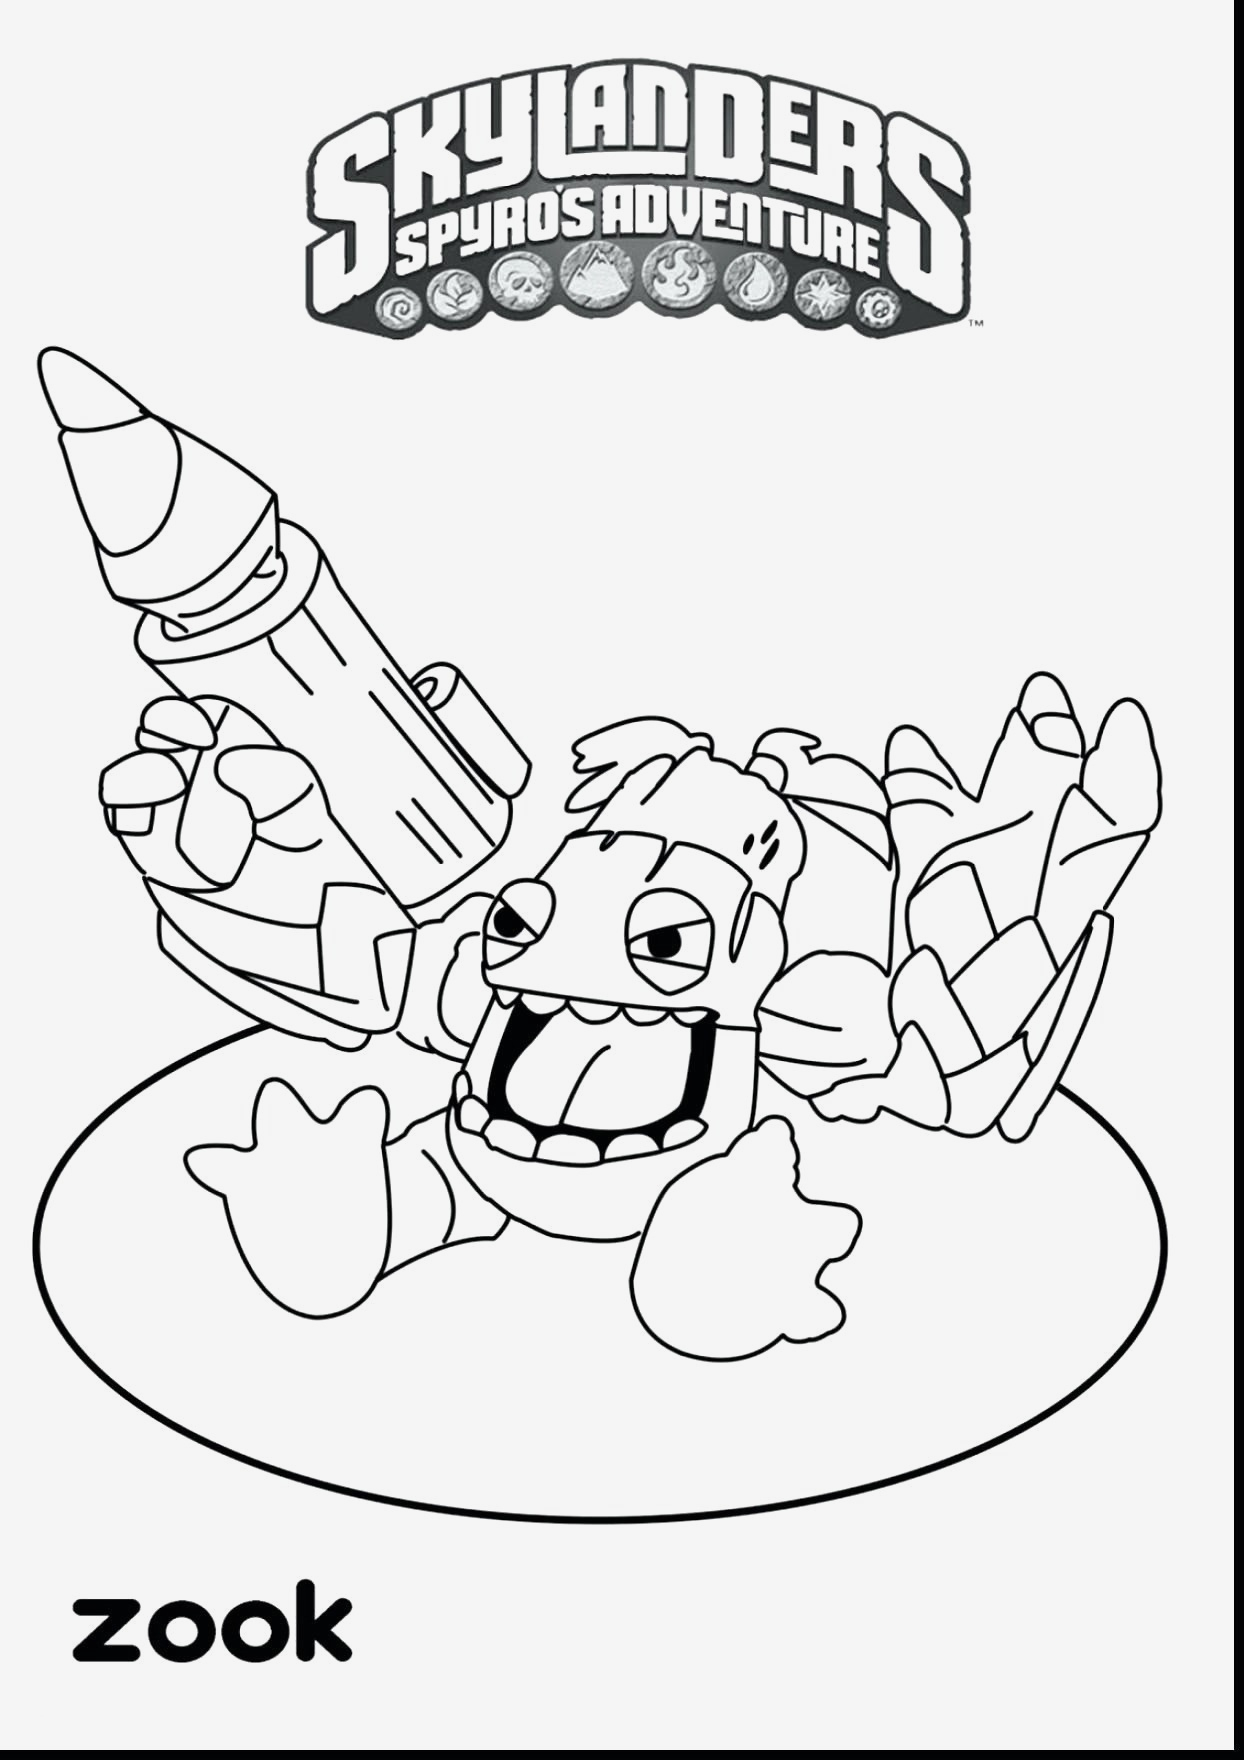 28 Turn Photos Into Coloring Pages Free Download - Coloring Sheets